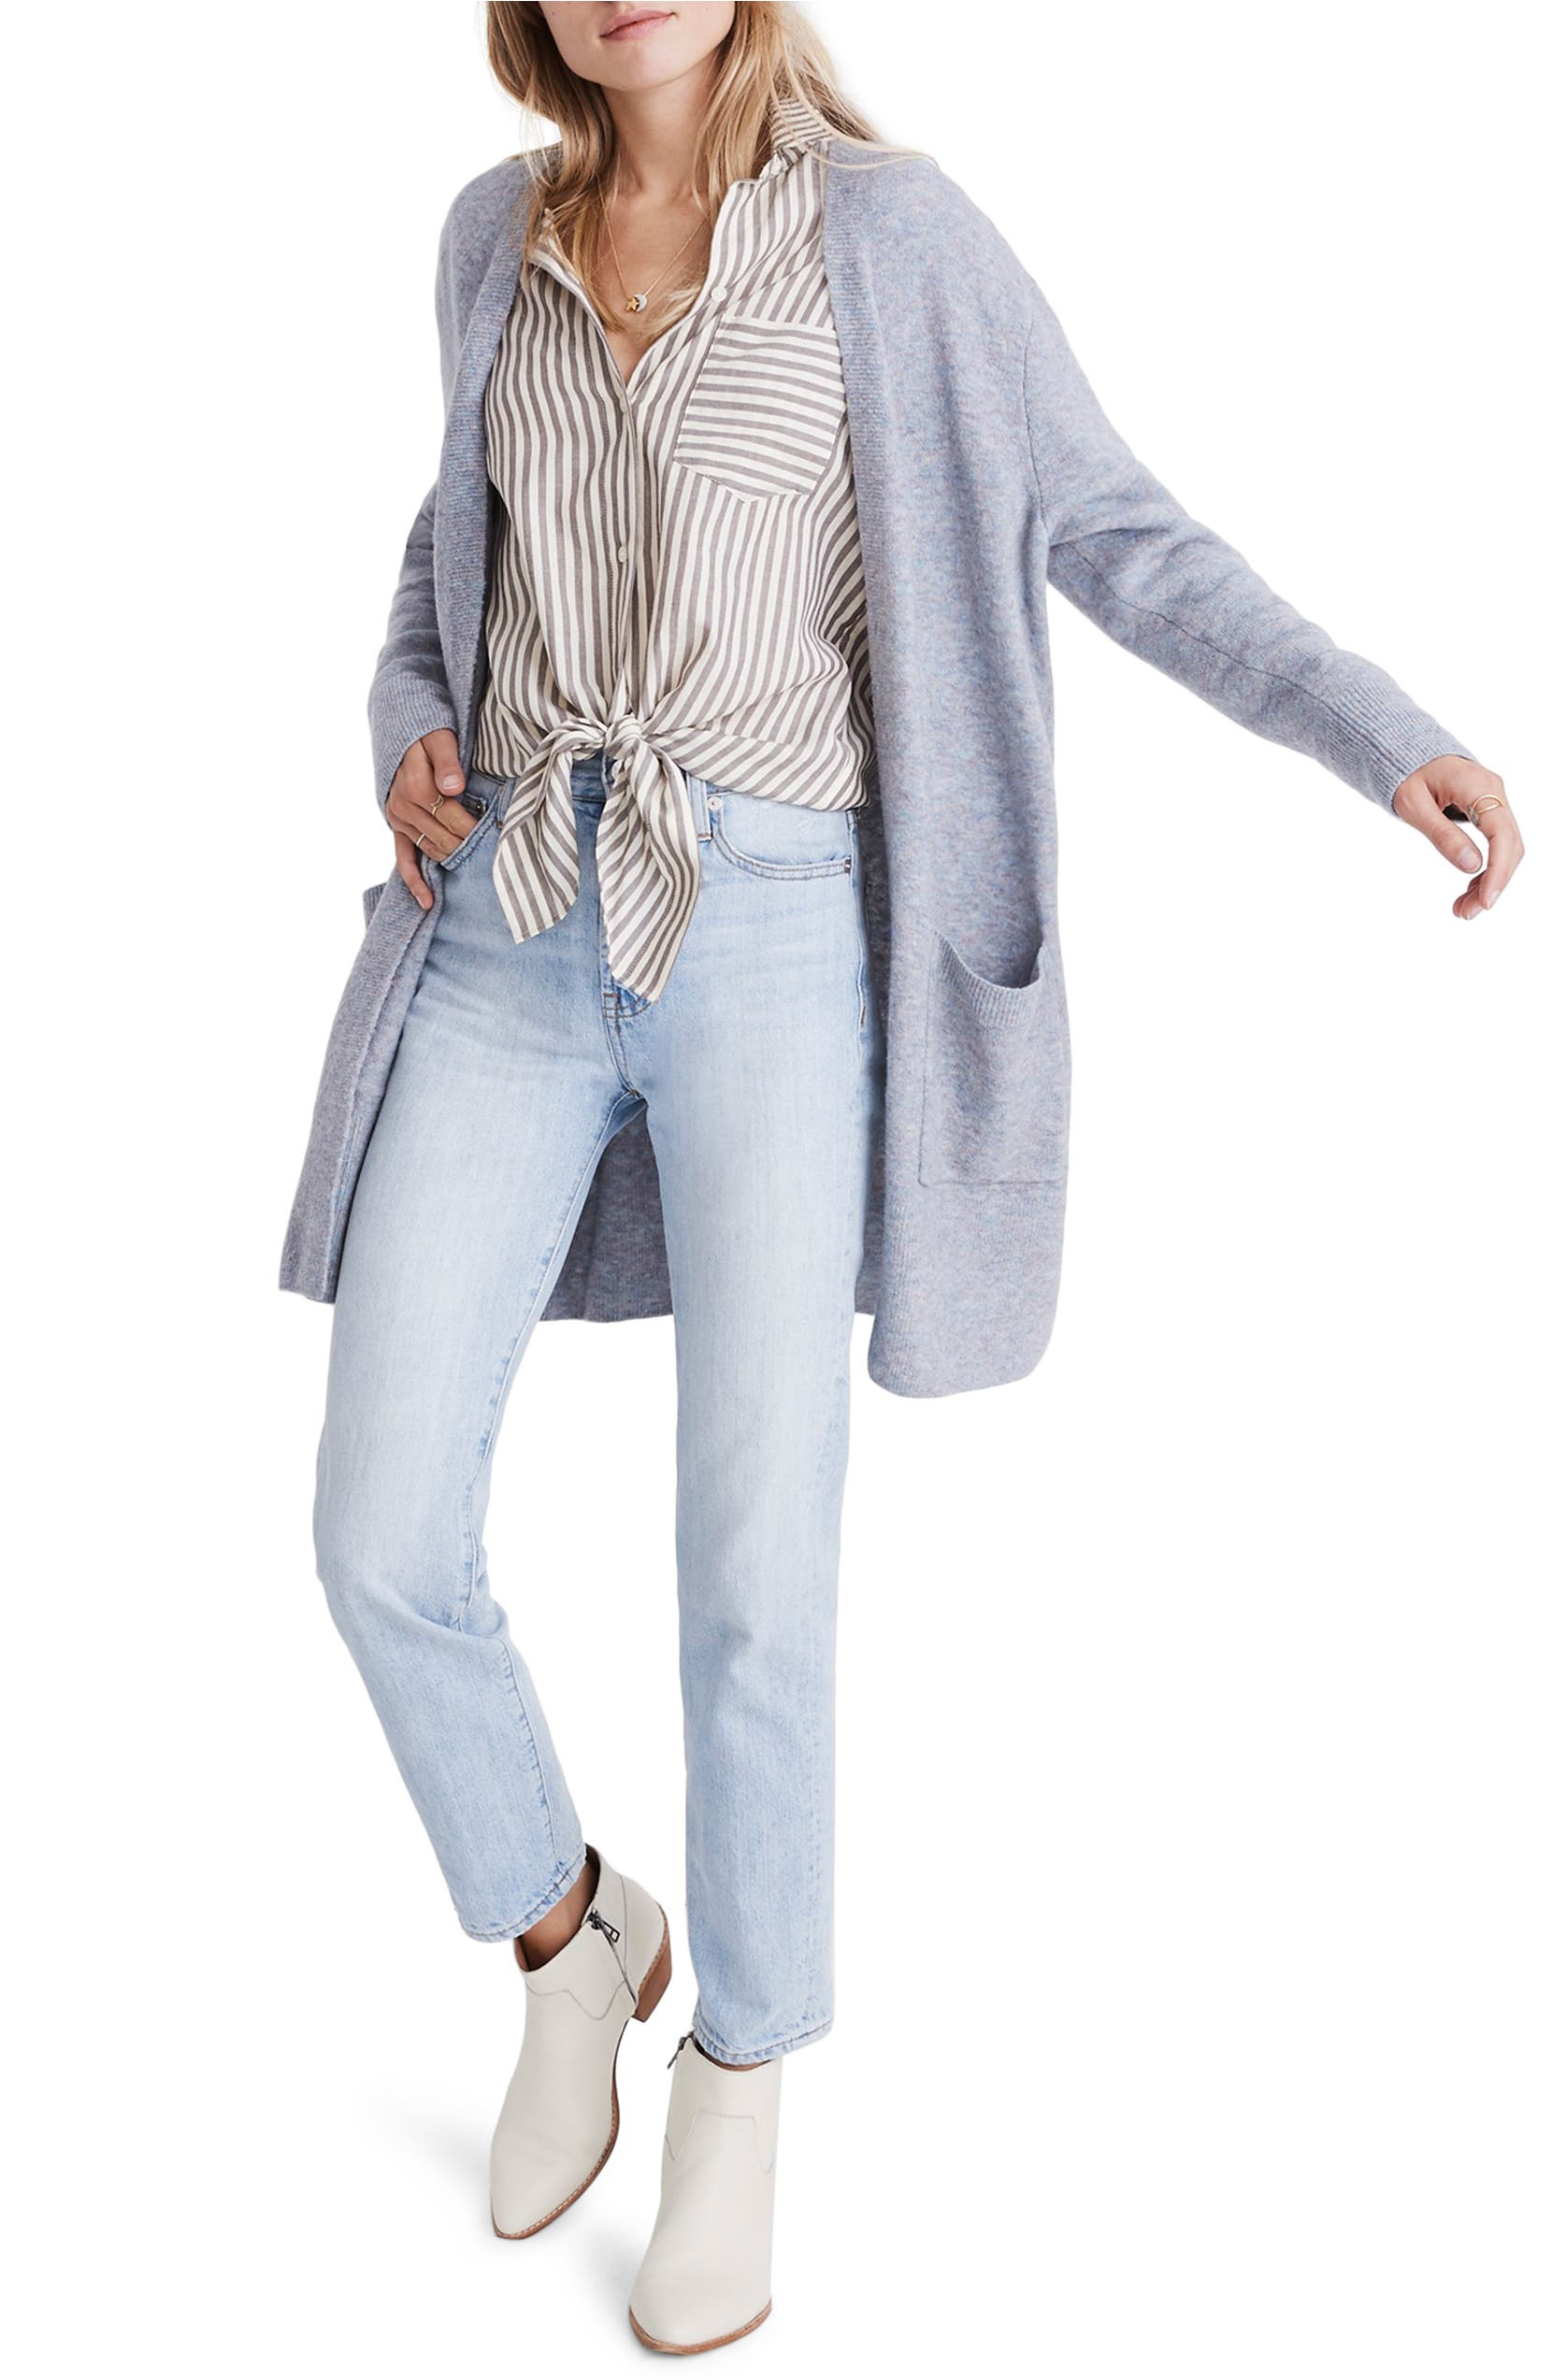 d99a87b55ae madewell sweater sweater kent cardigan kent cardigan madewell kent cardigan  madewell kent sweater madewell xwtqwRY4r